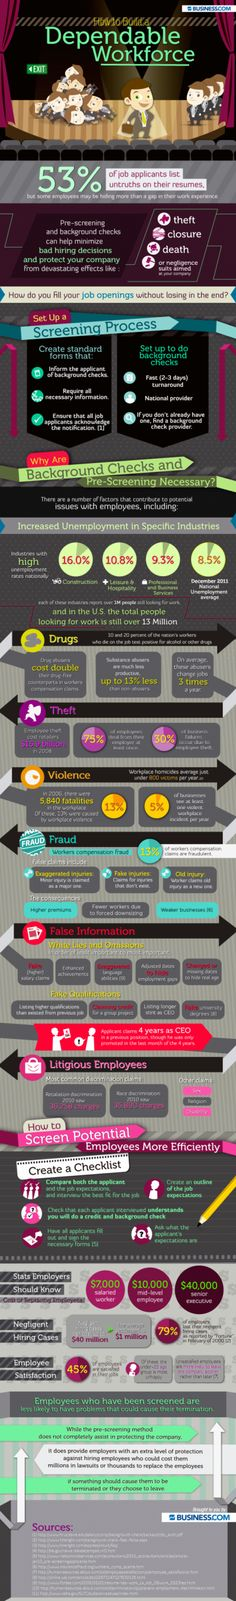 Infographic on how to build a dependable workforce utilizing background checks and pre-employment screening.  Some great current metrics & statistics.  Good reference for #privateinvestigators, #hr & #riskmanagers.